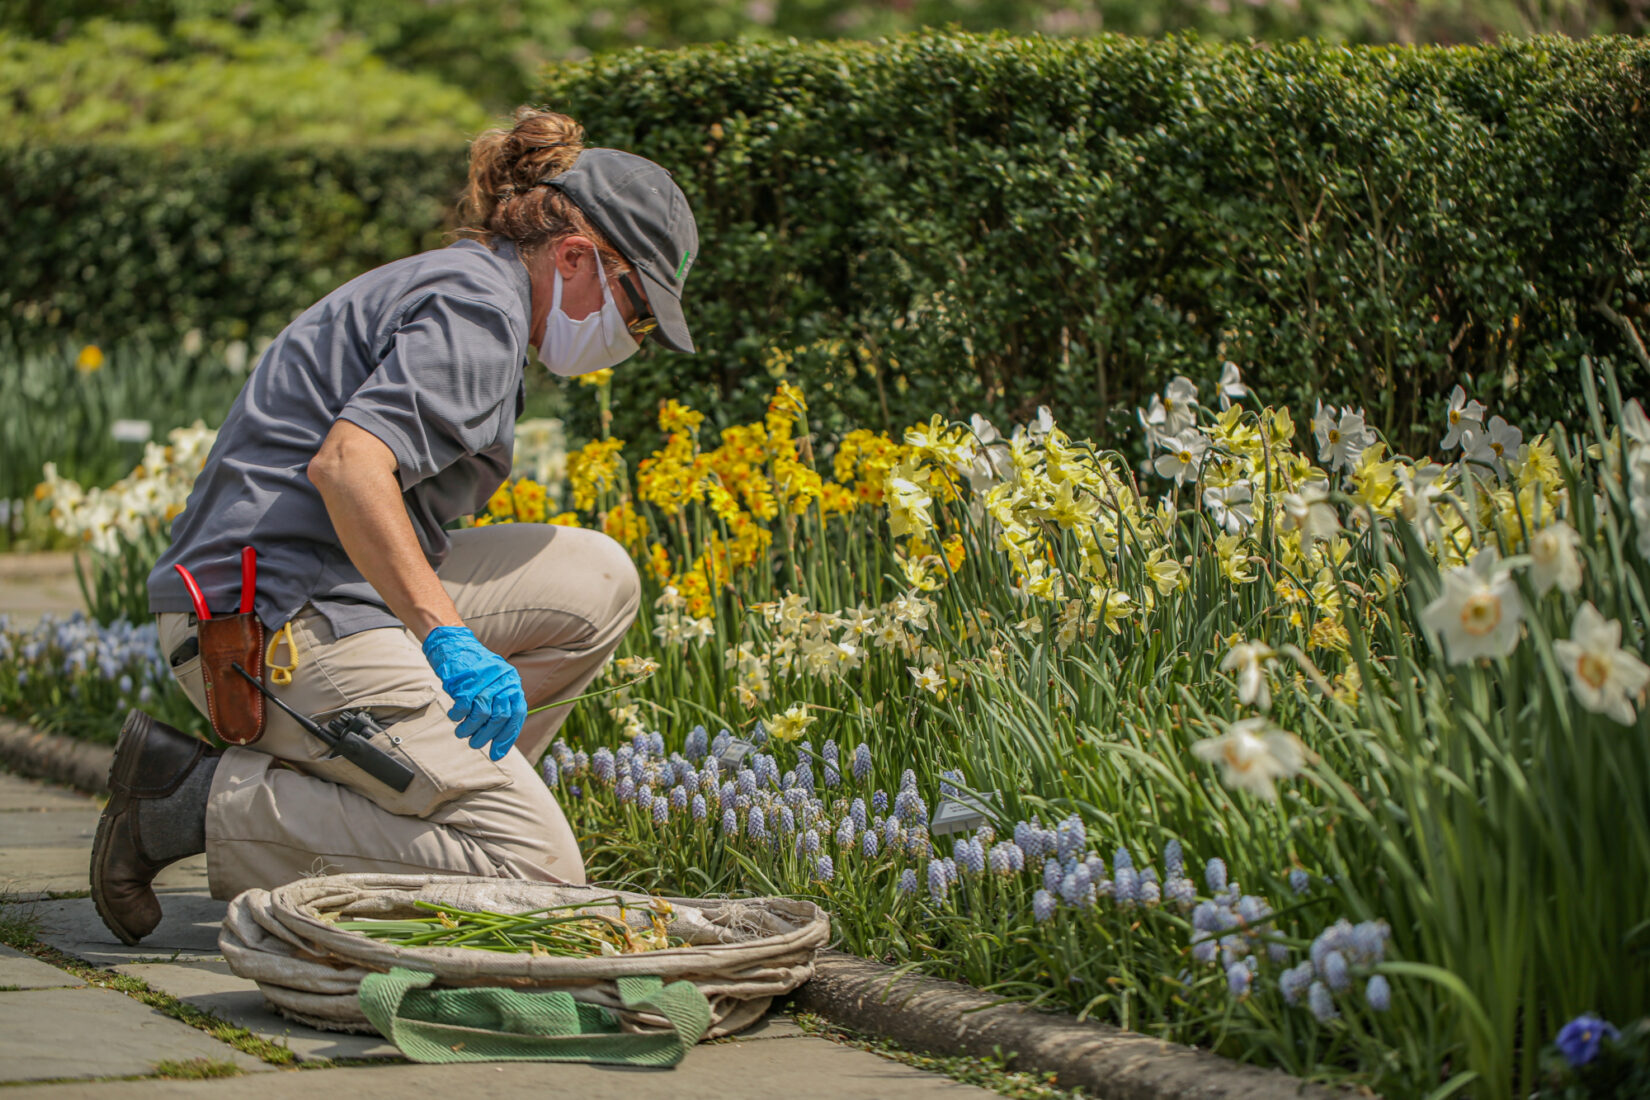 A Conservancy staff member at work on a flower bed